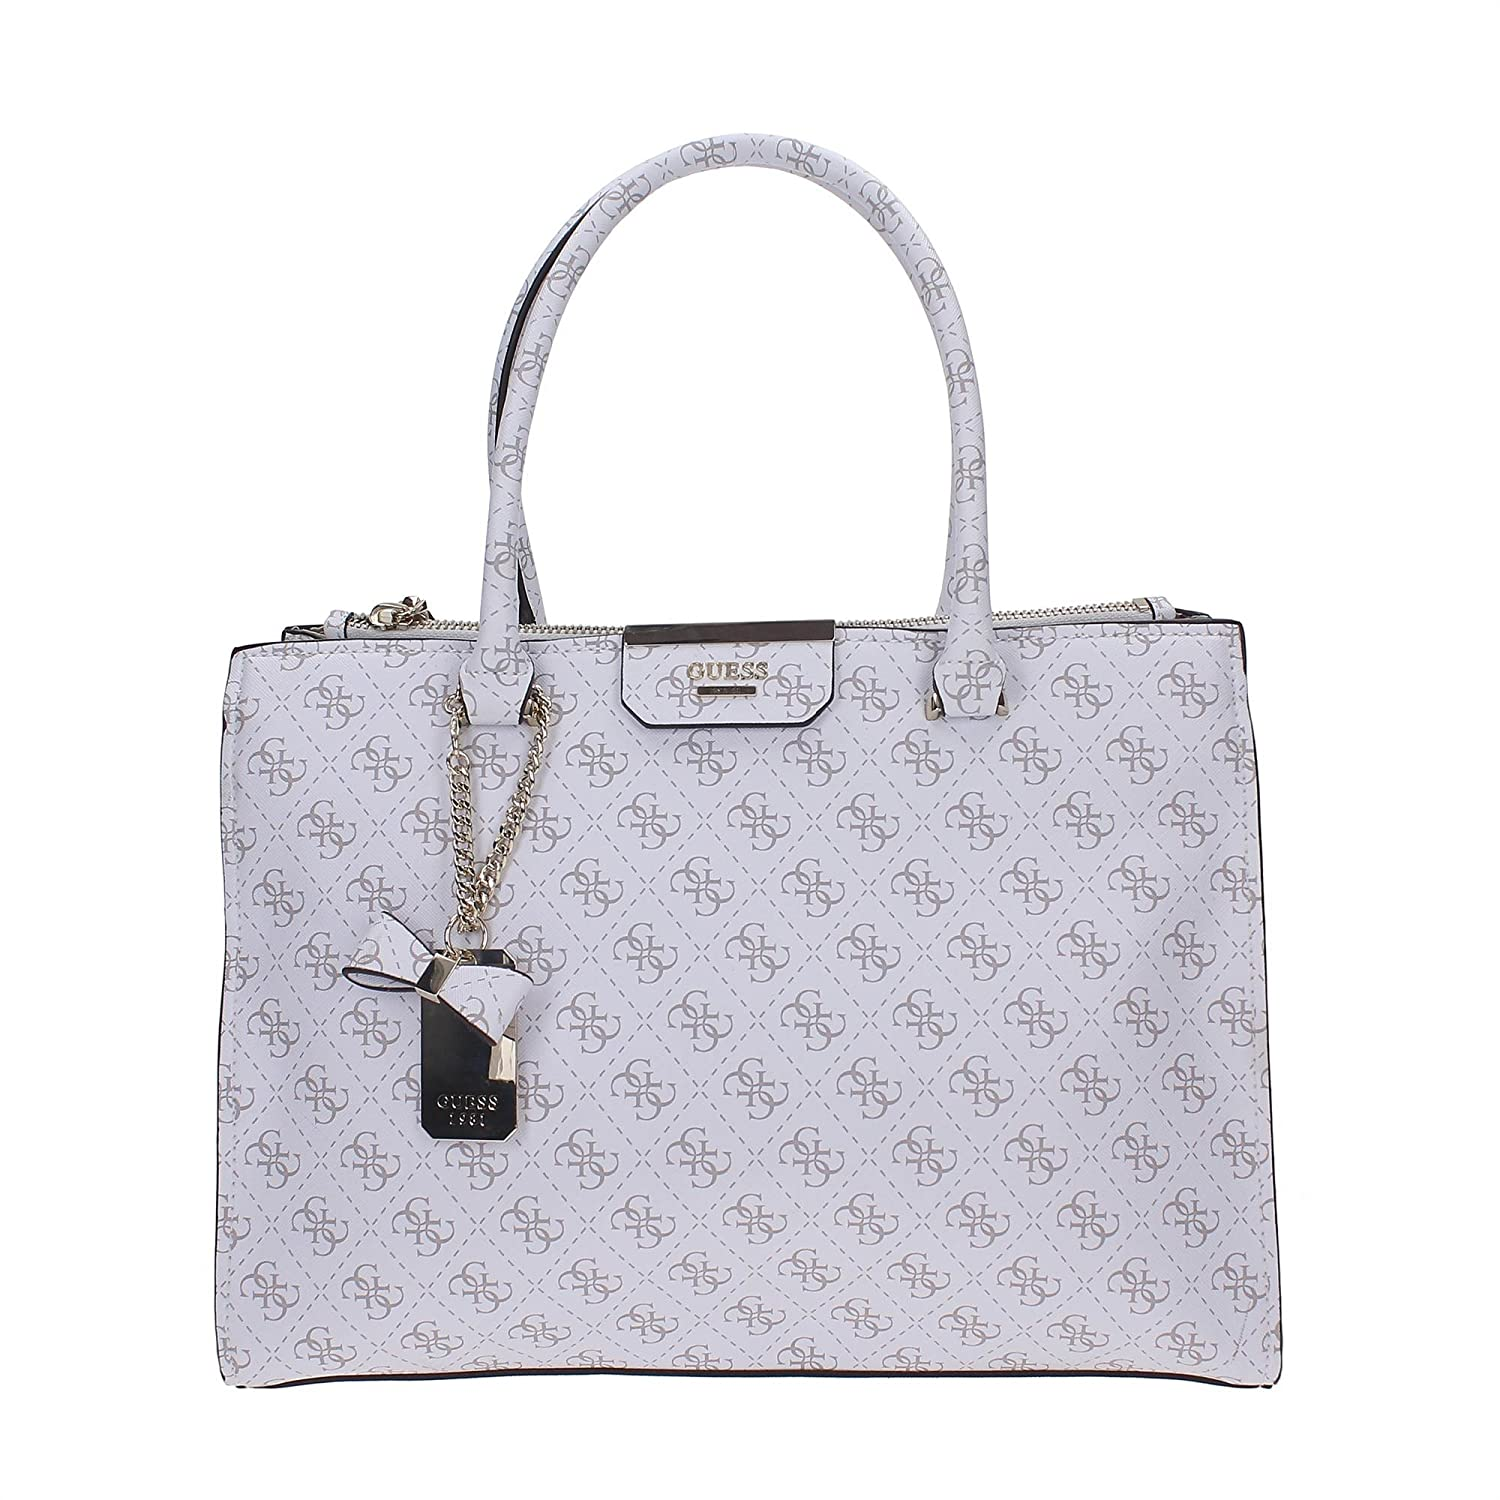 Guess Belfort slap shopping bag white: Amazon.it: Abbigliamento